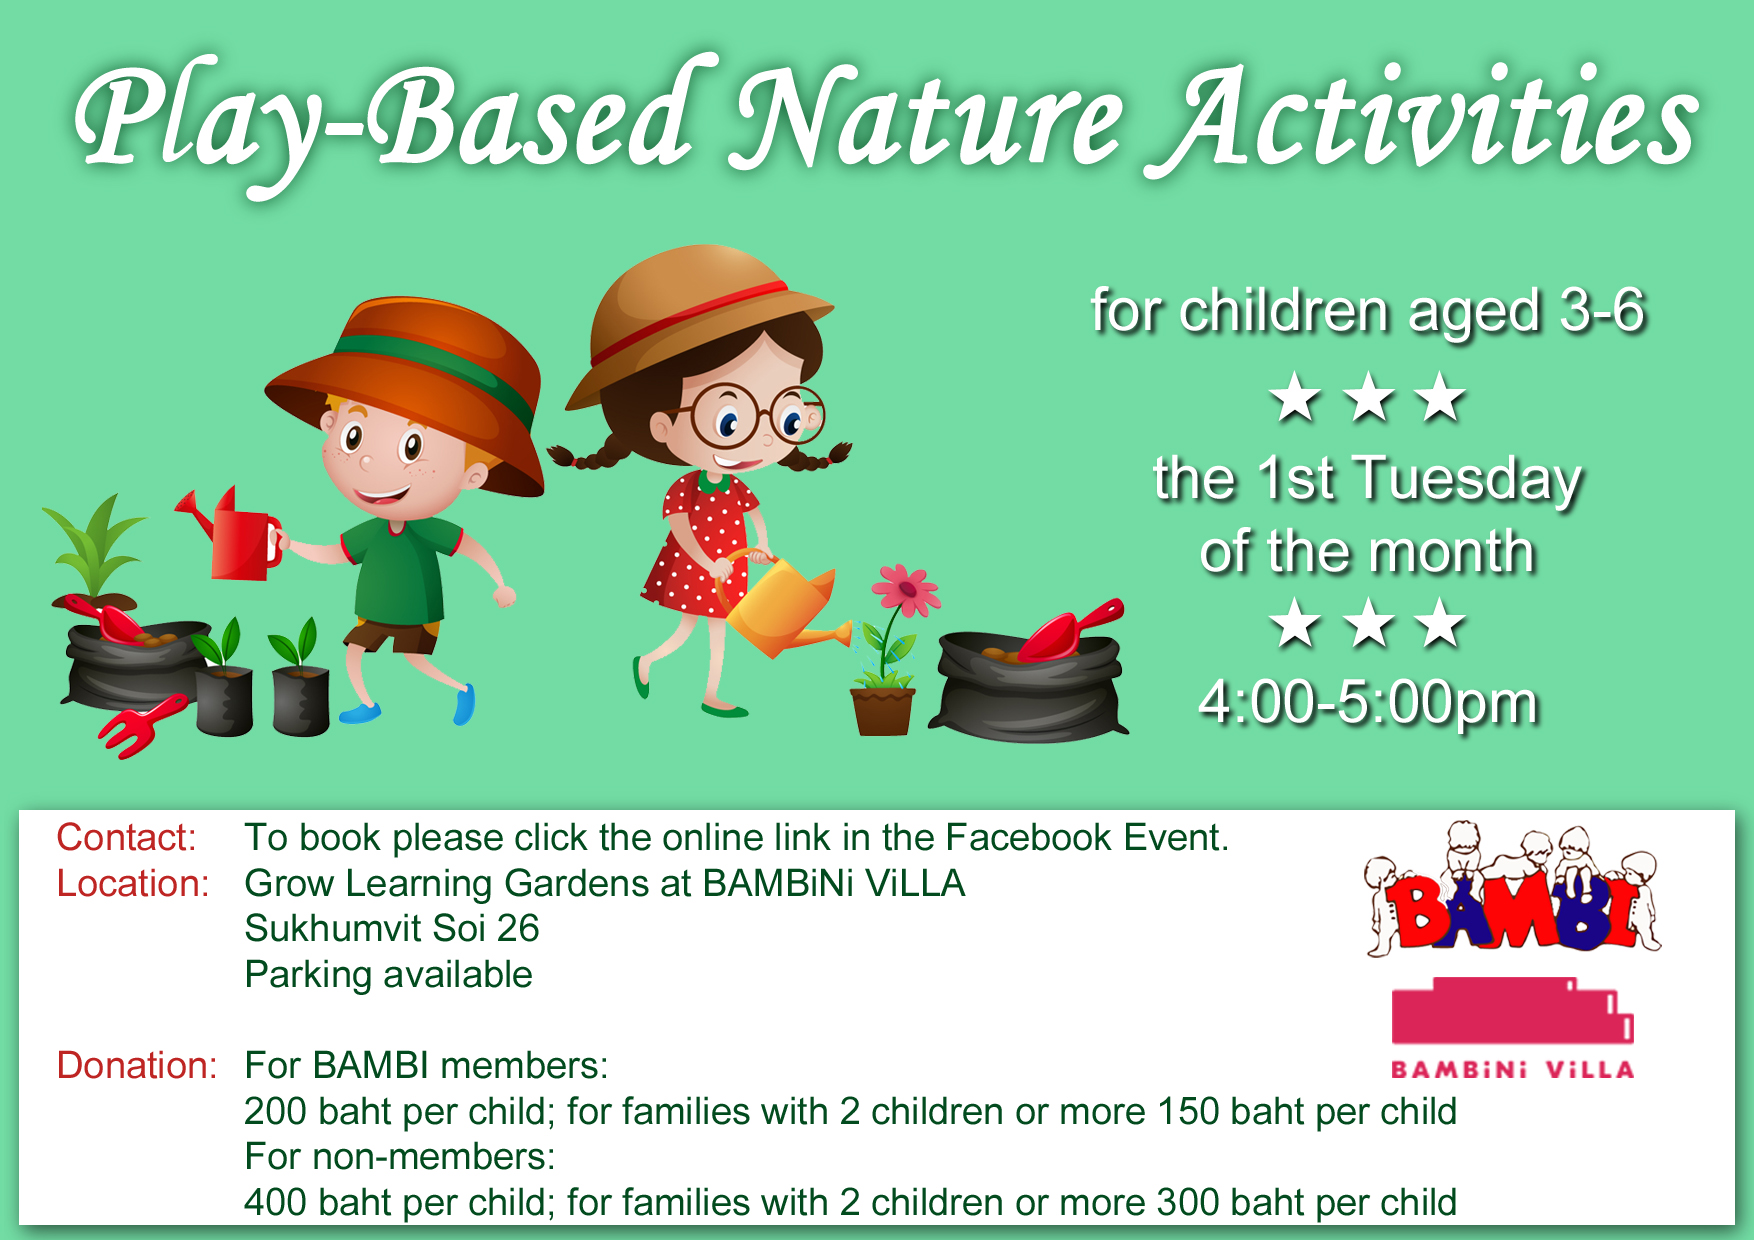 Play Based Nature Activities @ Bambini Villa